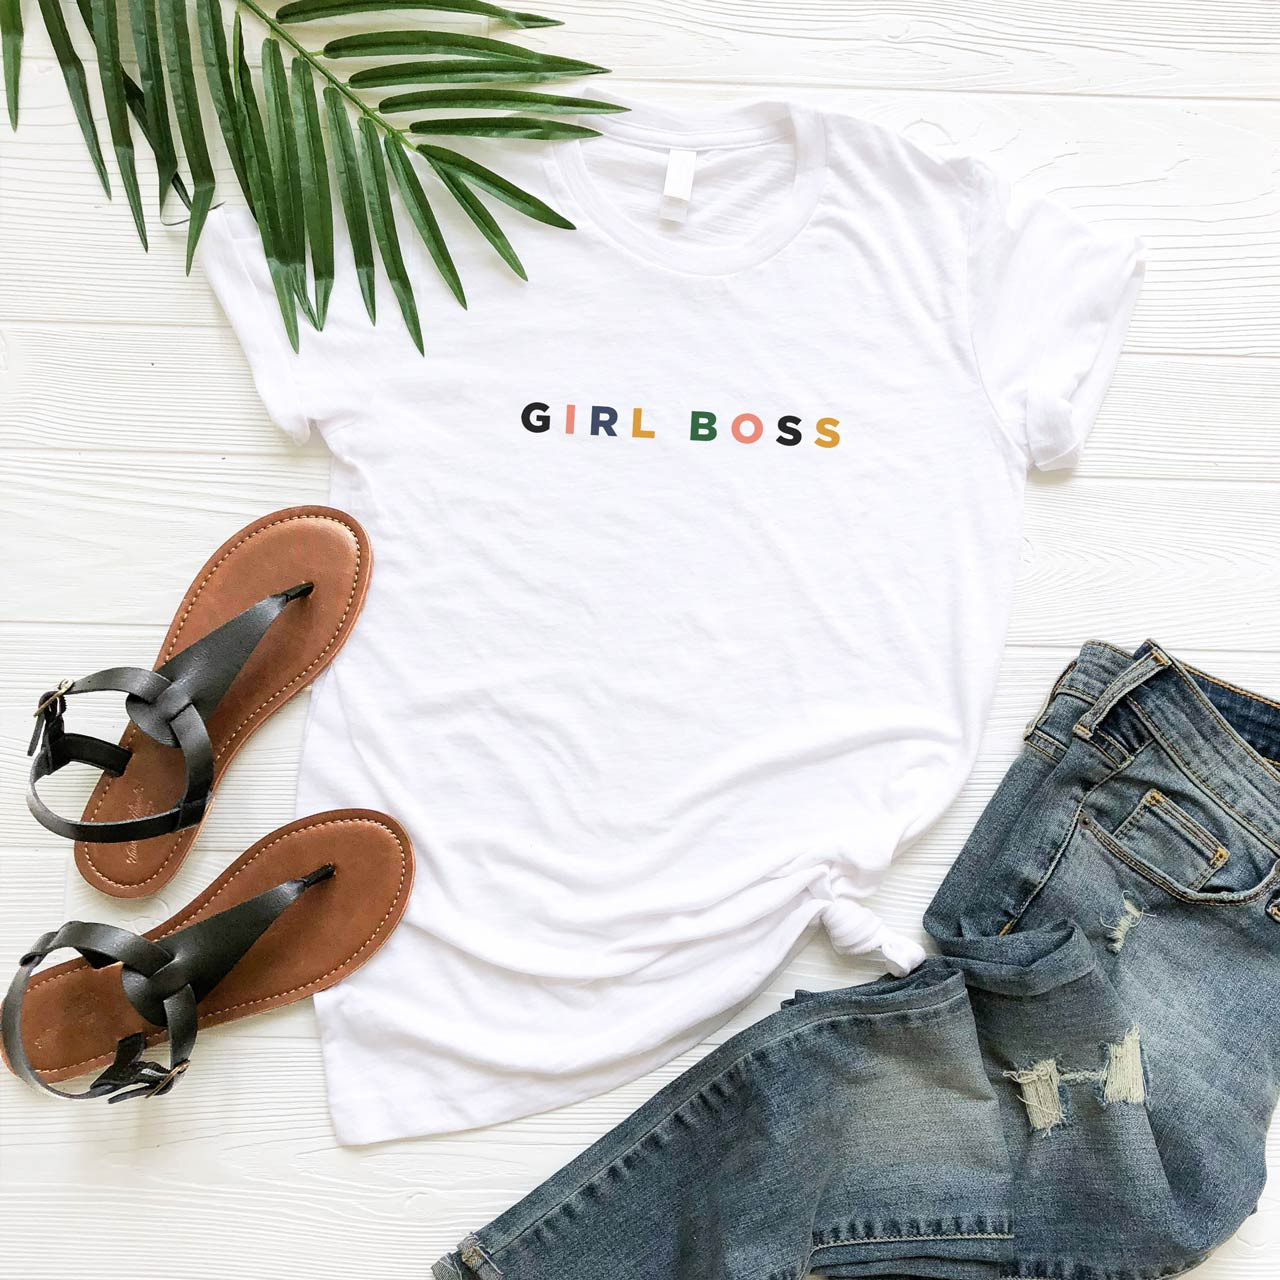 GIRL BOSS Cotton T-Shirt (Color on White) from The Printed Home